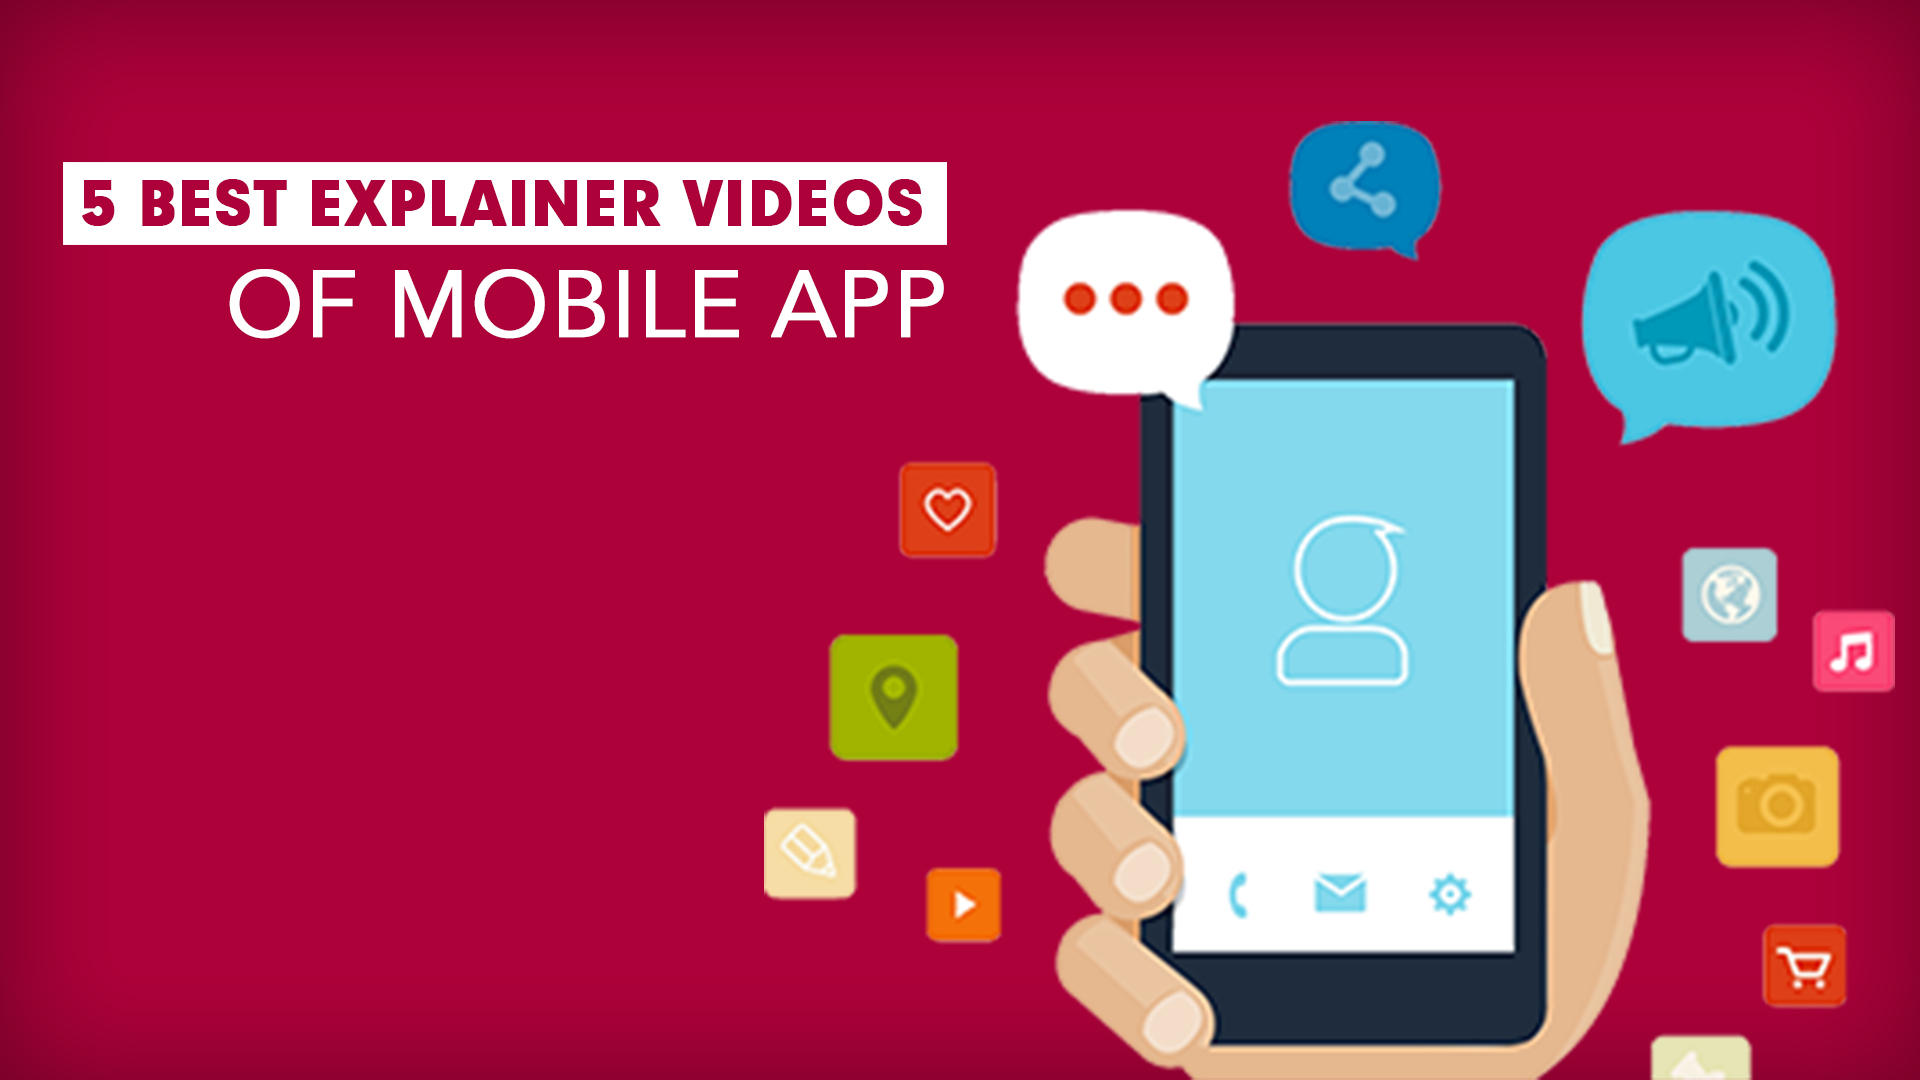 5 Best explainer videos of Mobile App